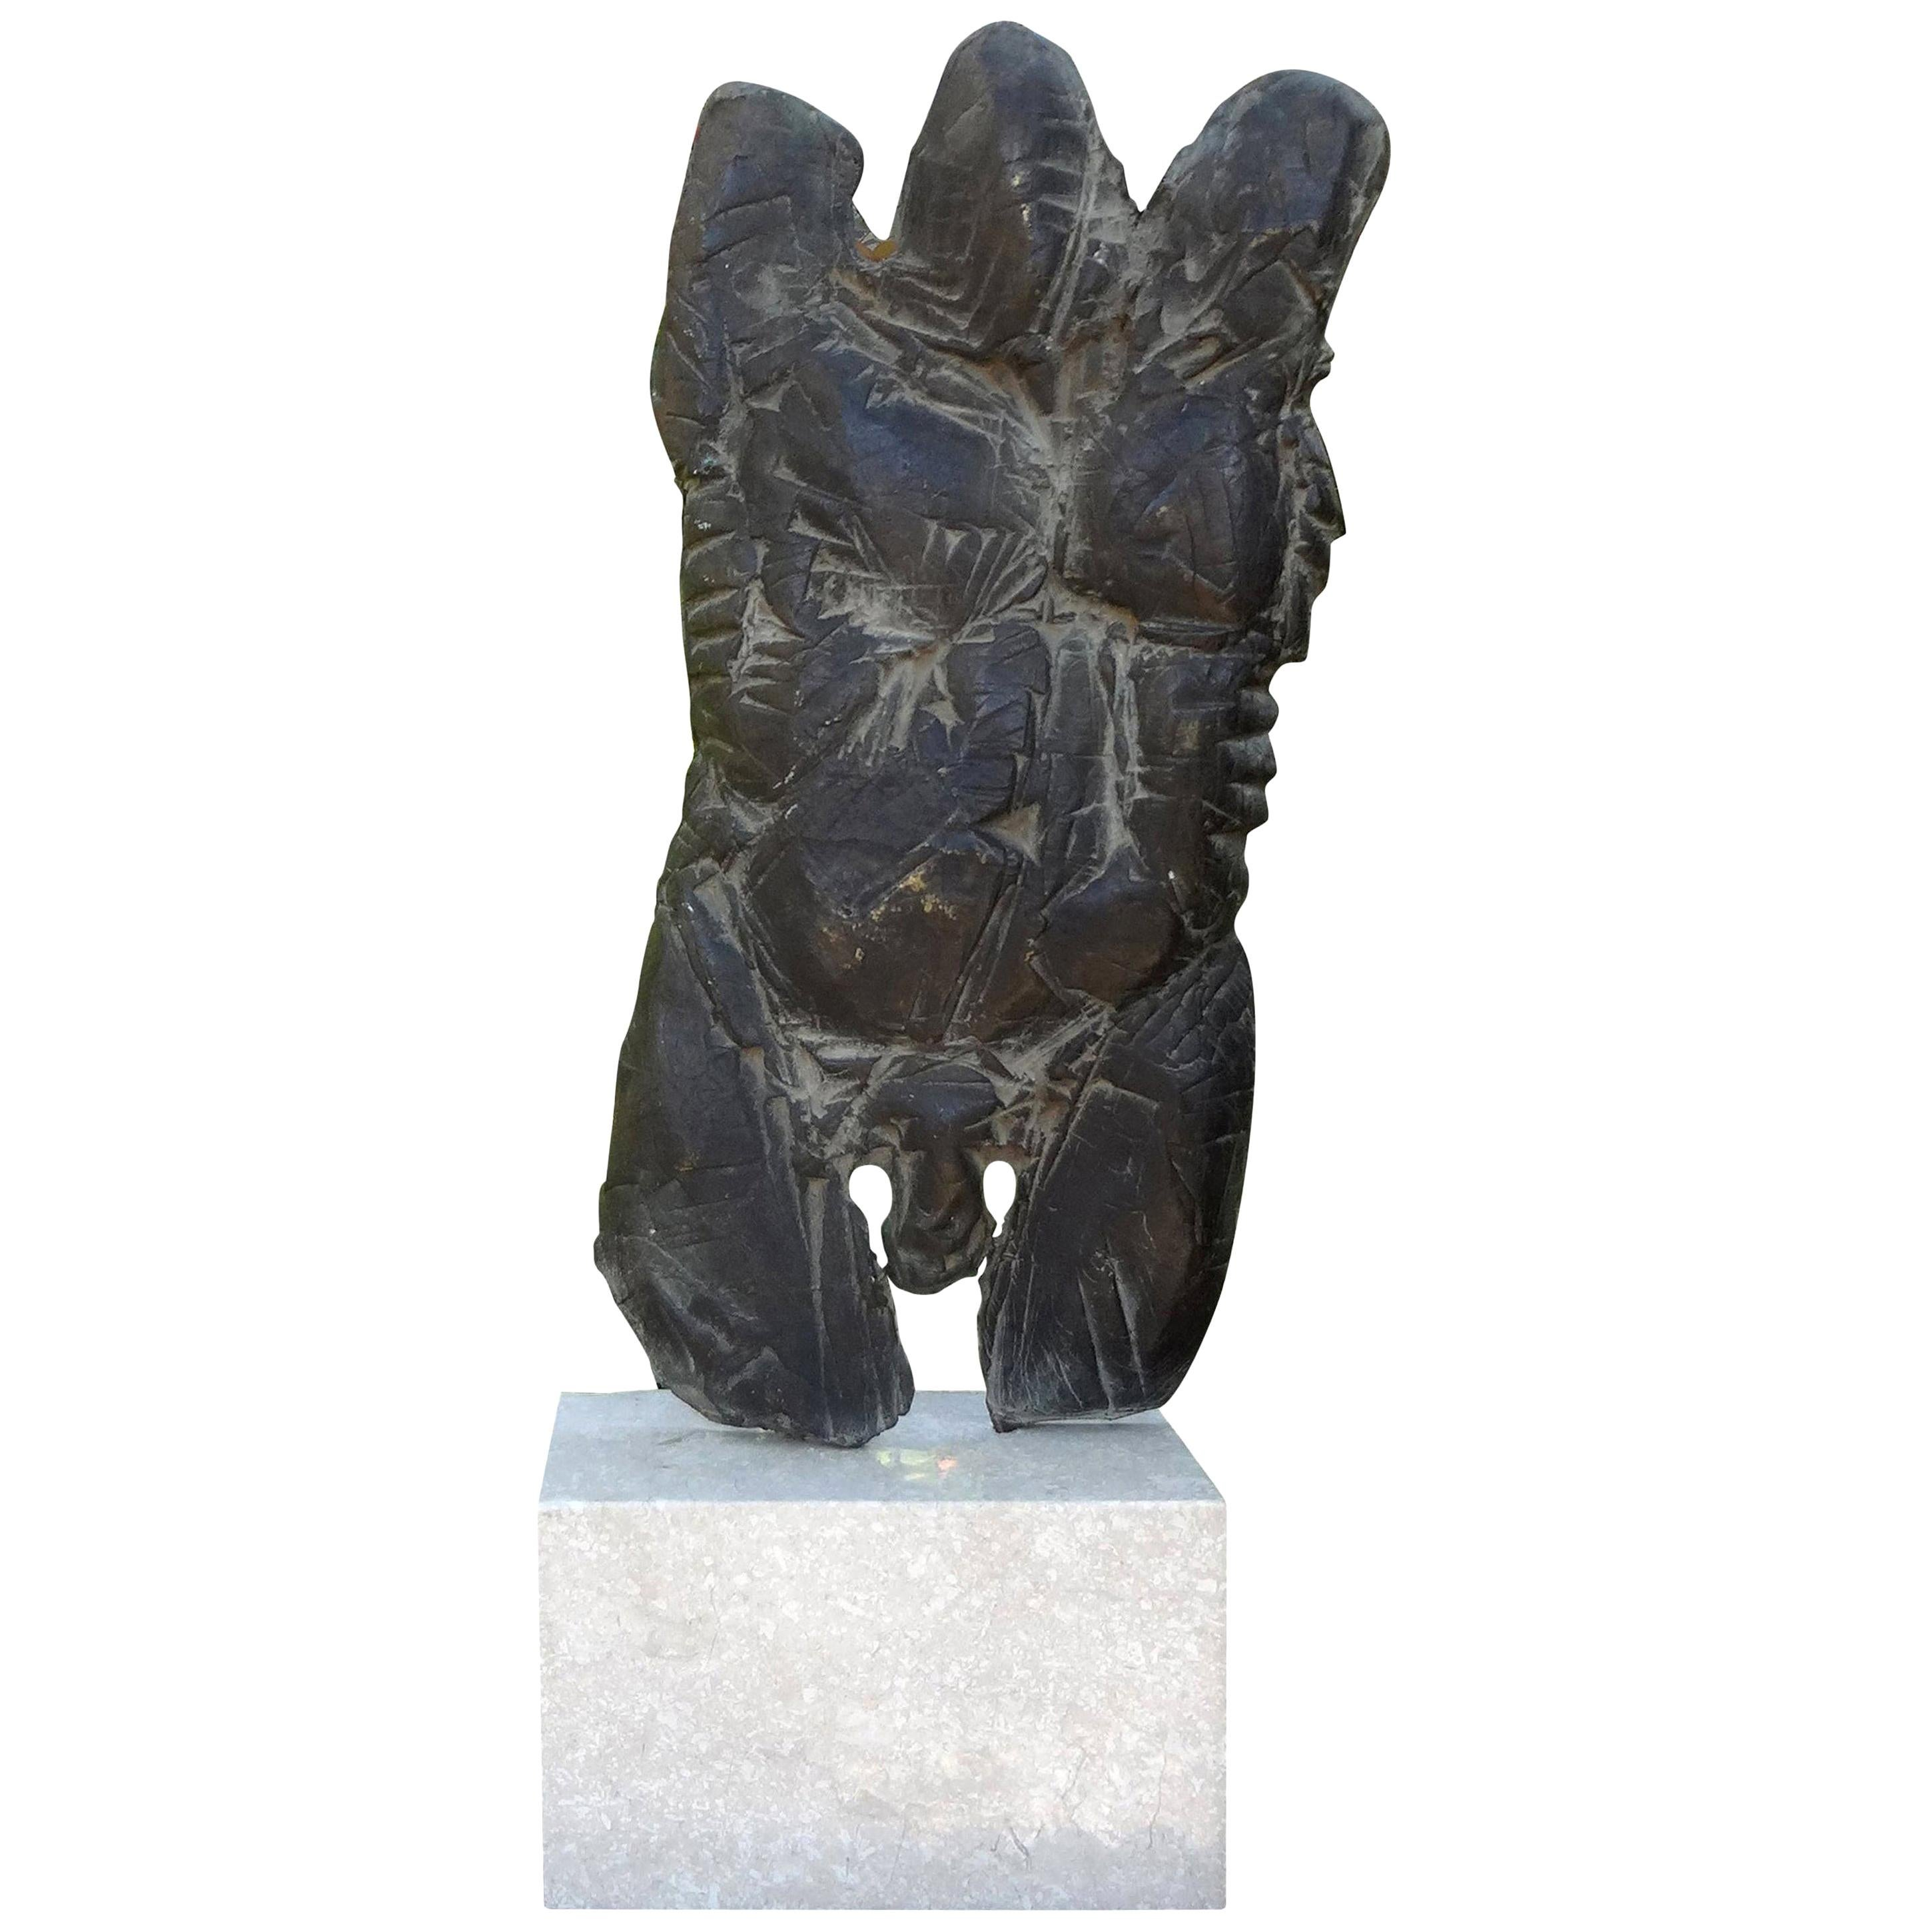 Giacometti Inspired Abstract Male Torso Bronze Sculpture on Marble Base